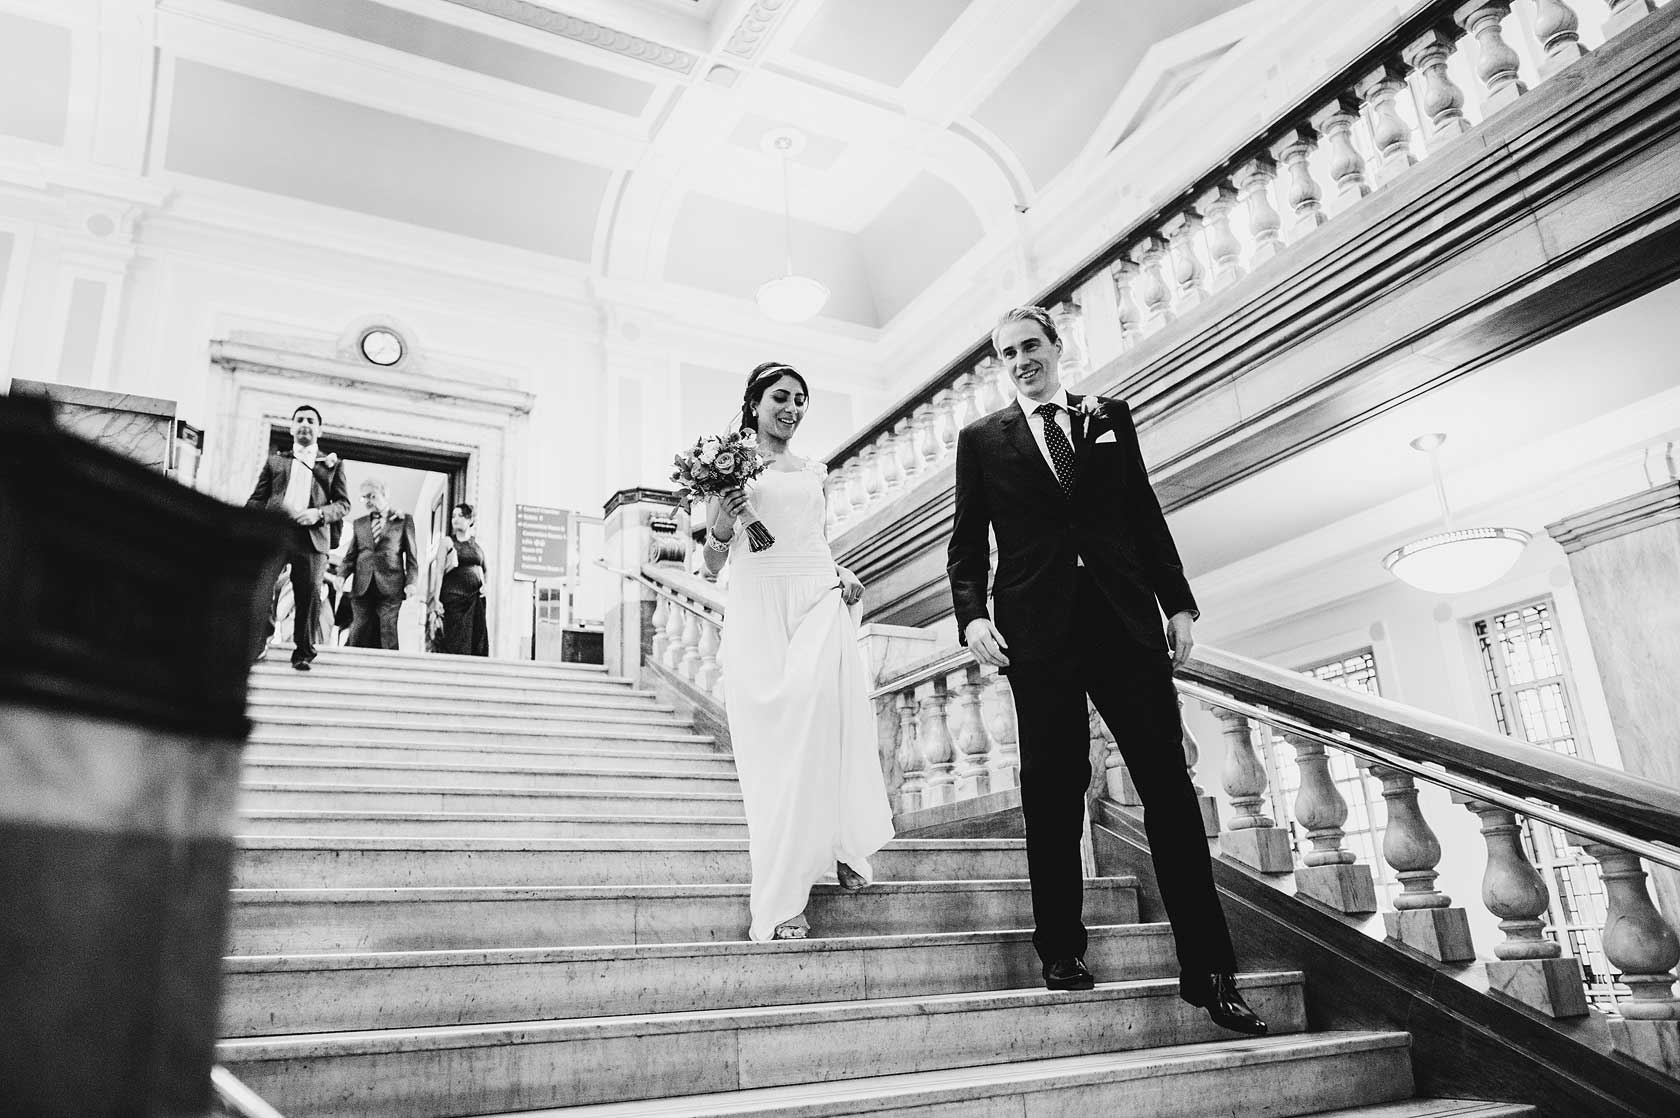 Reportage Wedding Photography at Zetter Townhouse